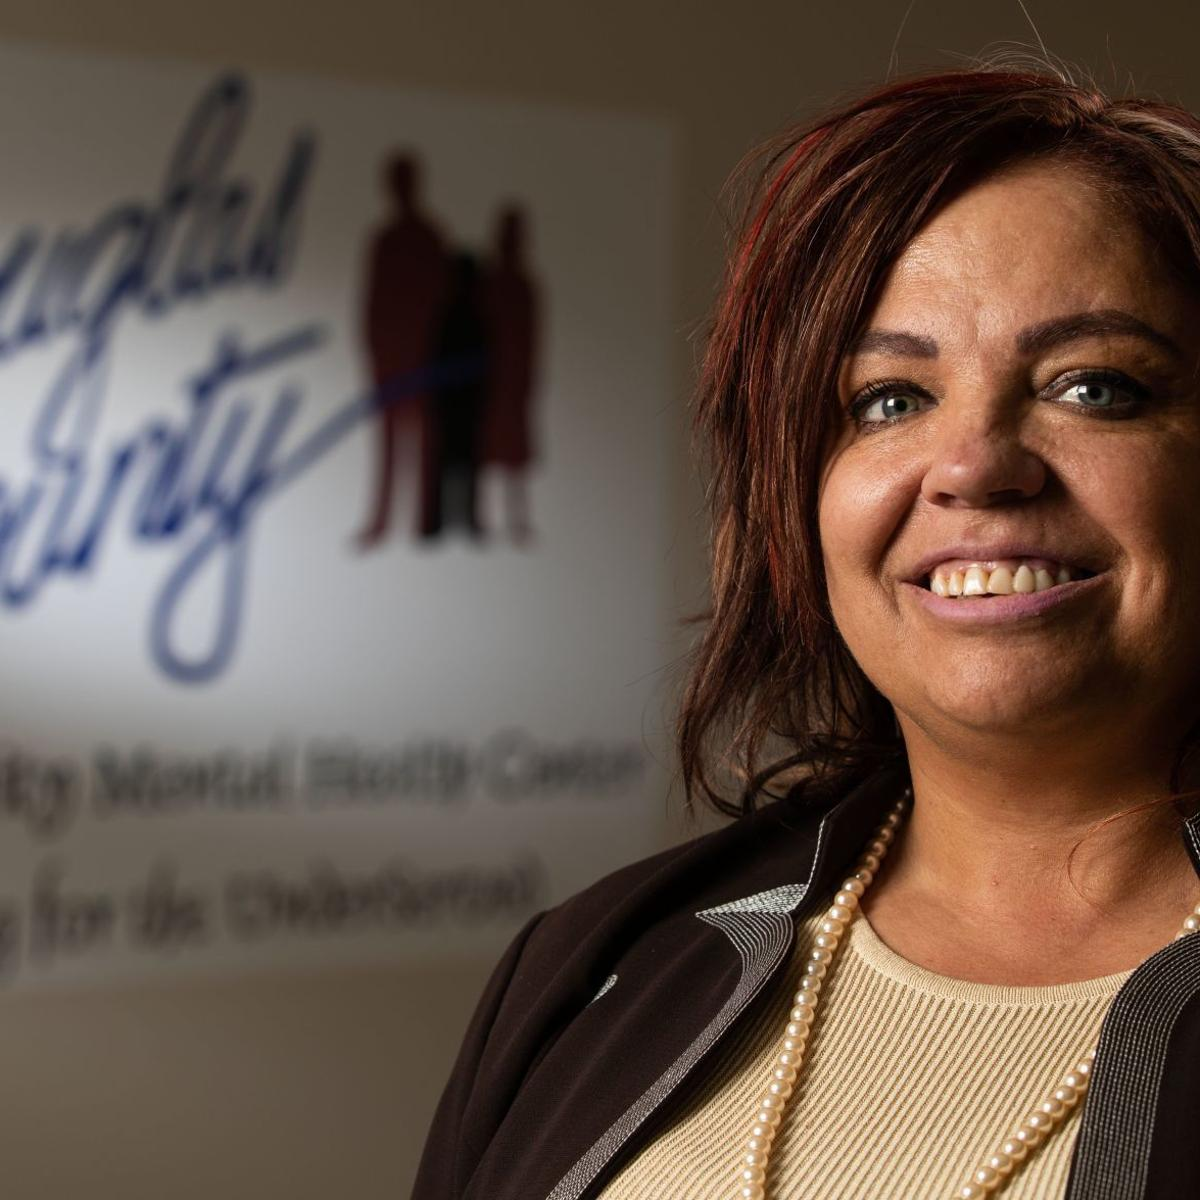 We have criminalized mental health': Sarpy facility aims to address